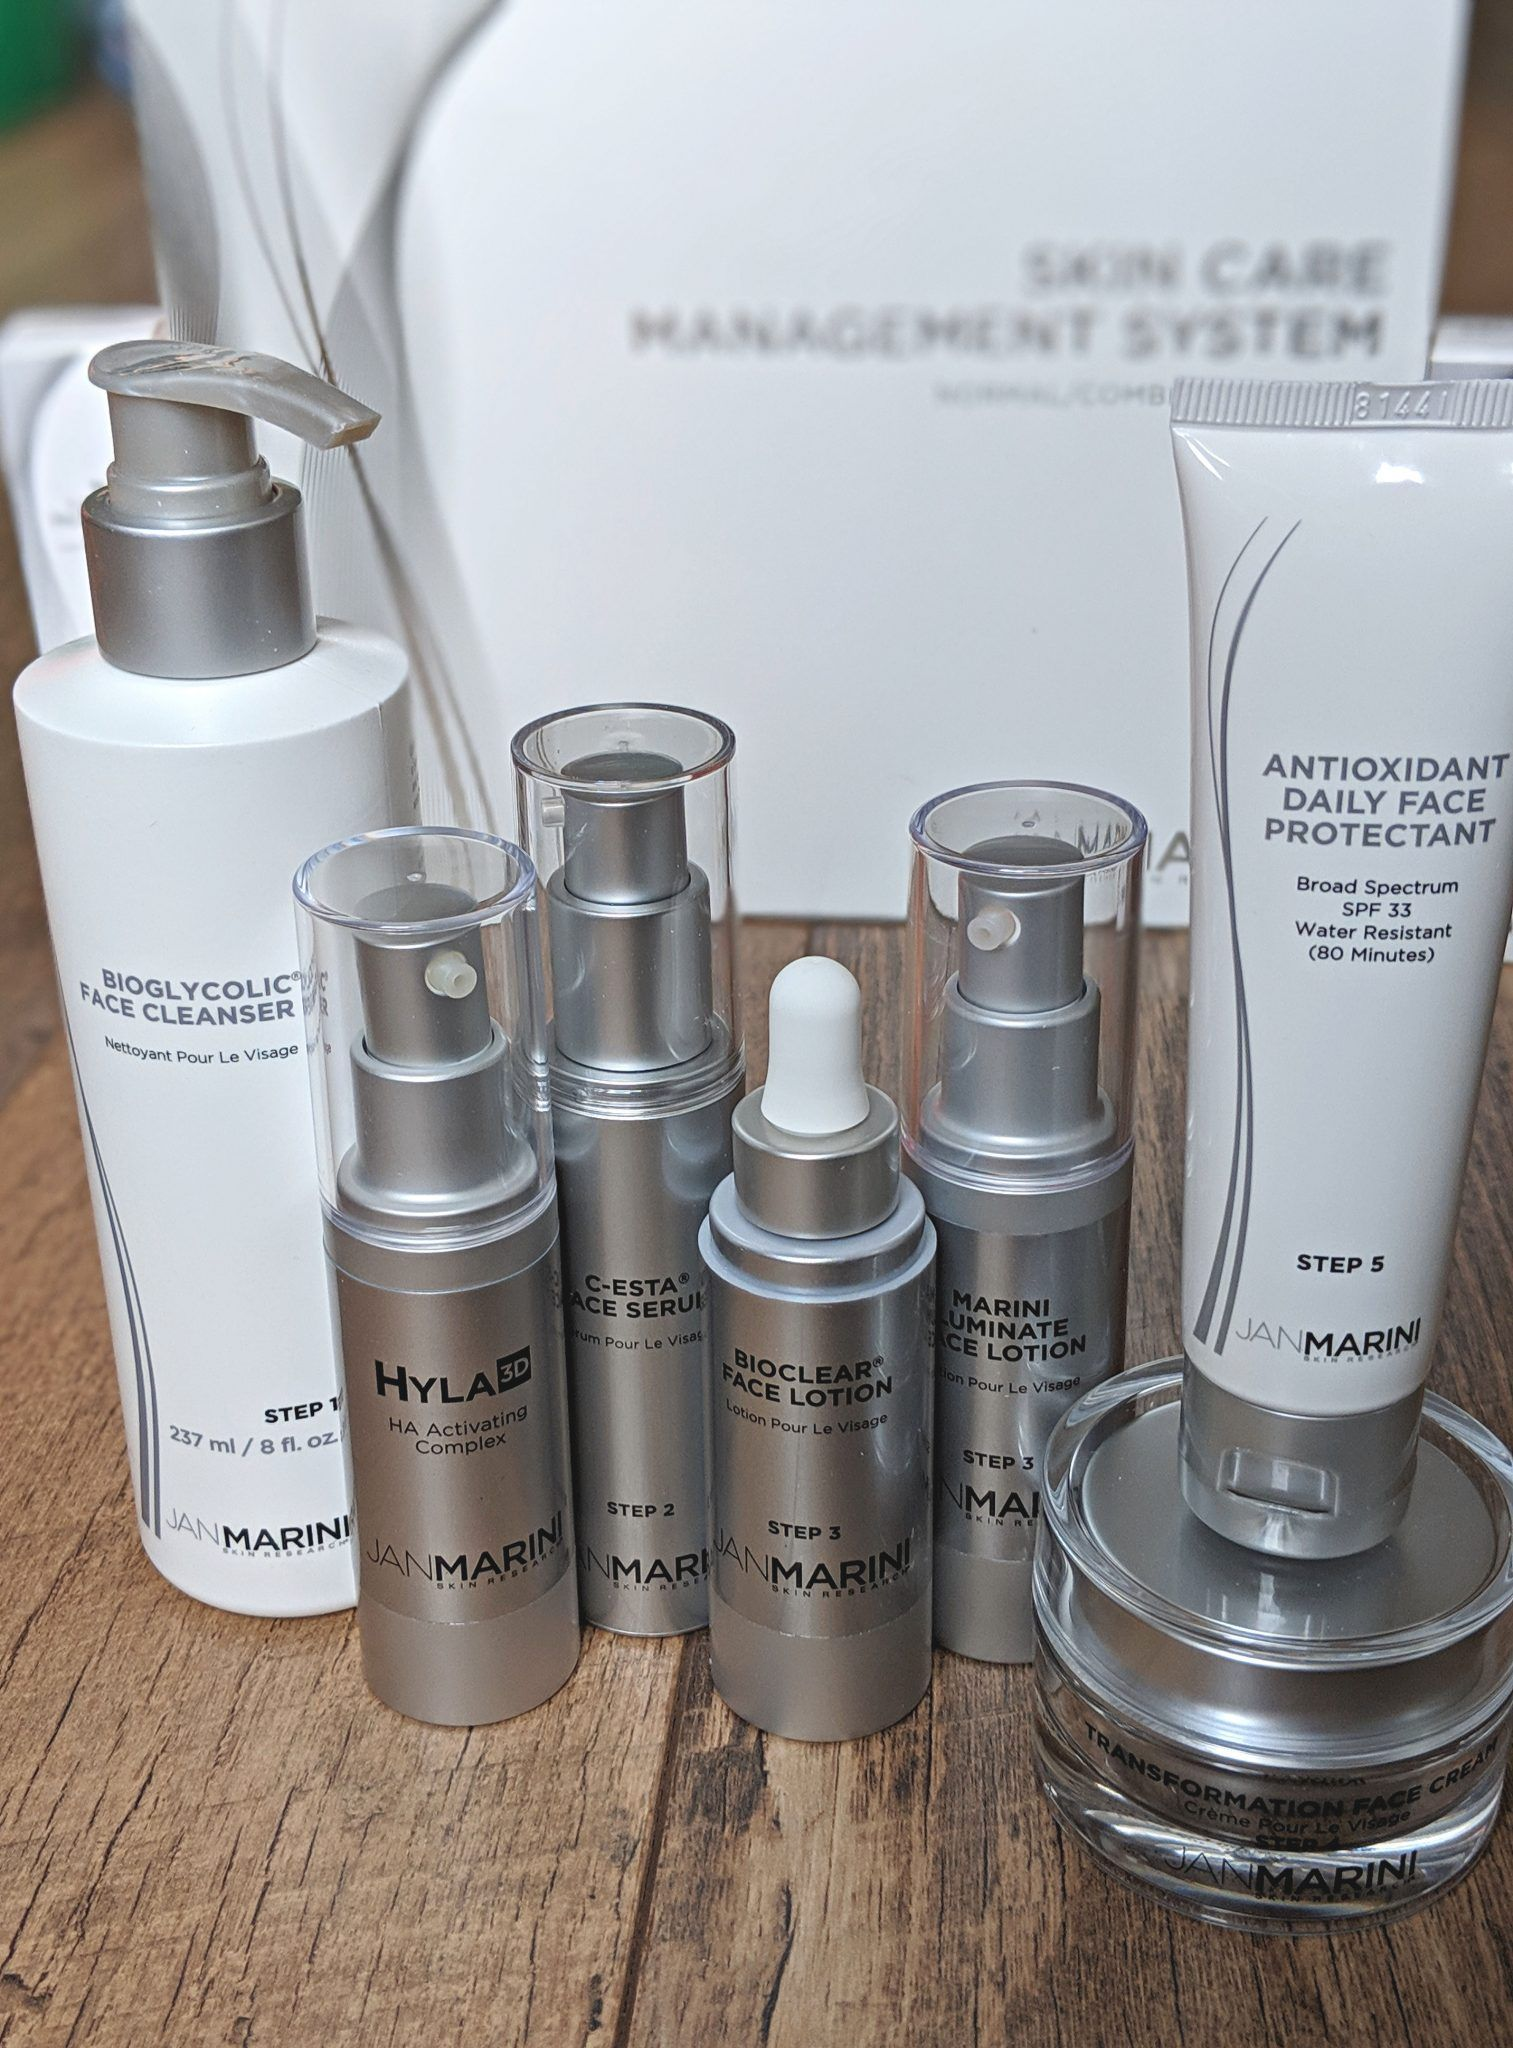 Jan Marini Skin Care Consultation And Review Womensskincareproducts Jan Marini Skin Care Consultation And Rev Dry Skin Care Skin Care Steps Skin Care Remedies